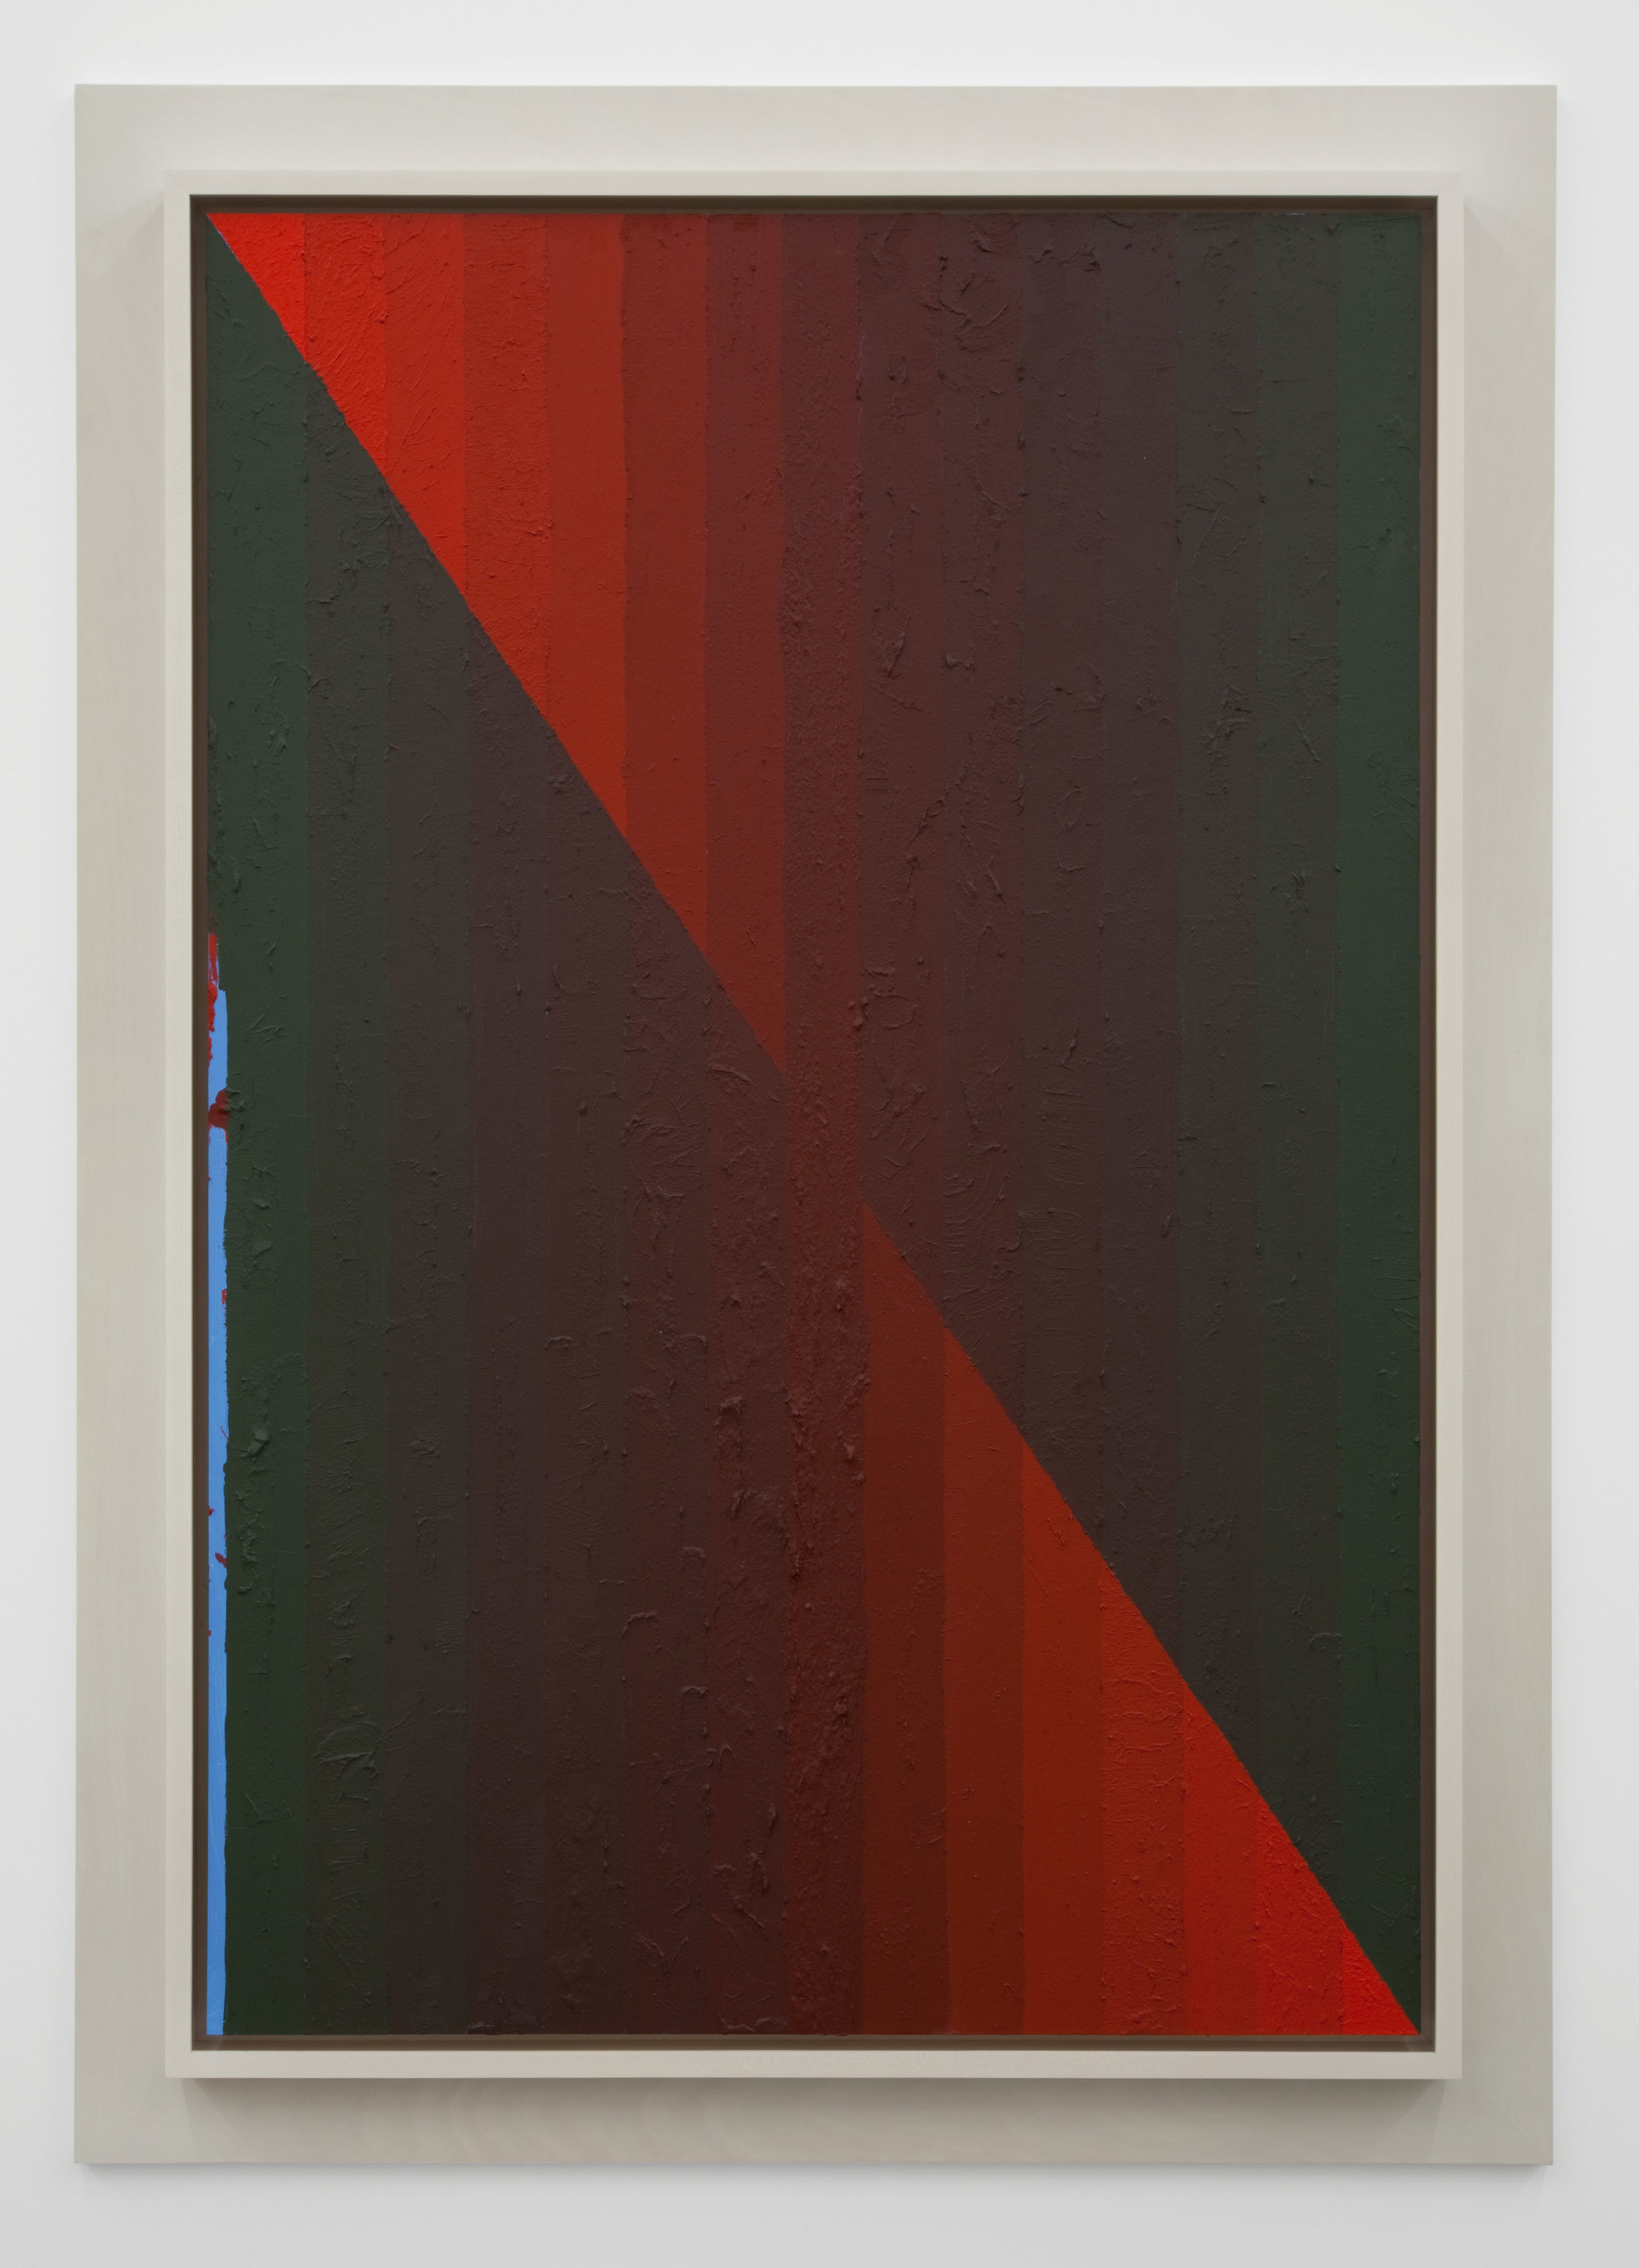 Execution Changes #47 (DS, Q1, ULJ, LC, Q2, LRJ, LC), 2012 acrylic on panel 158,7 x 113 cm - 62 1/2 x 44 1/2 inches